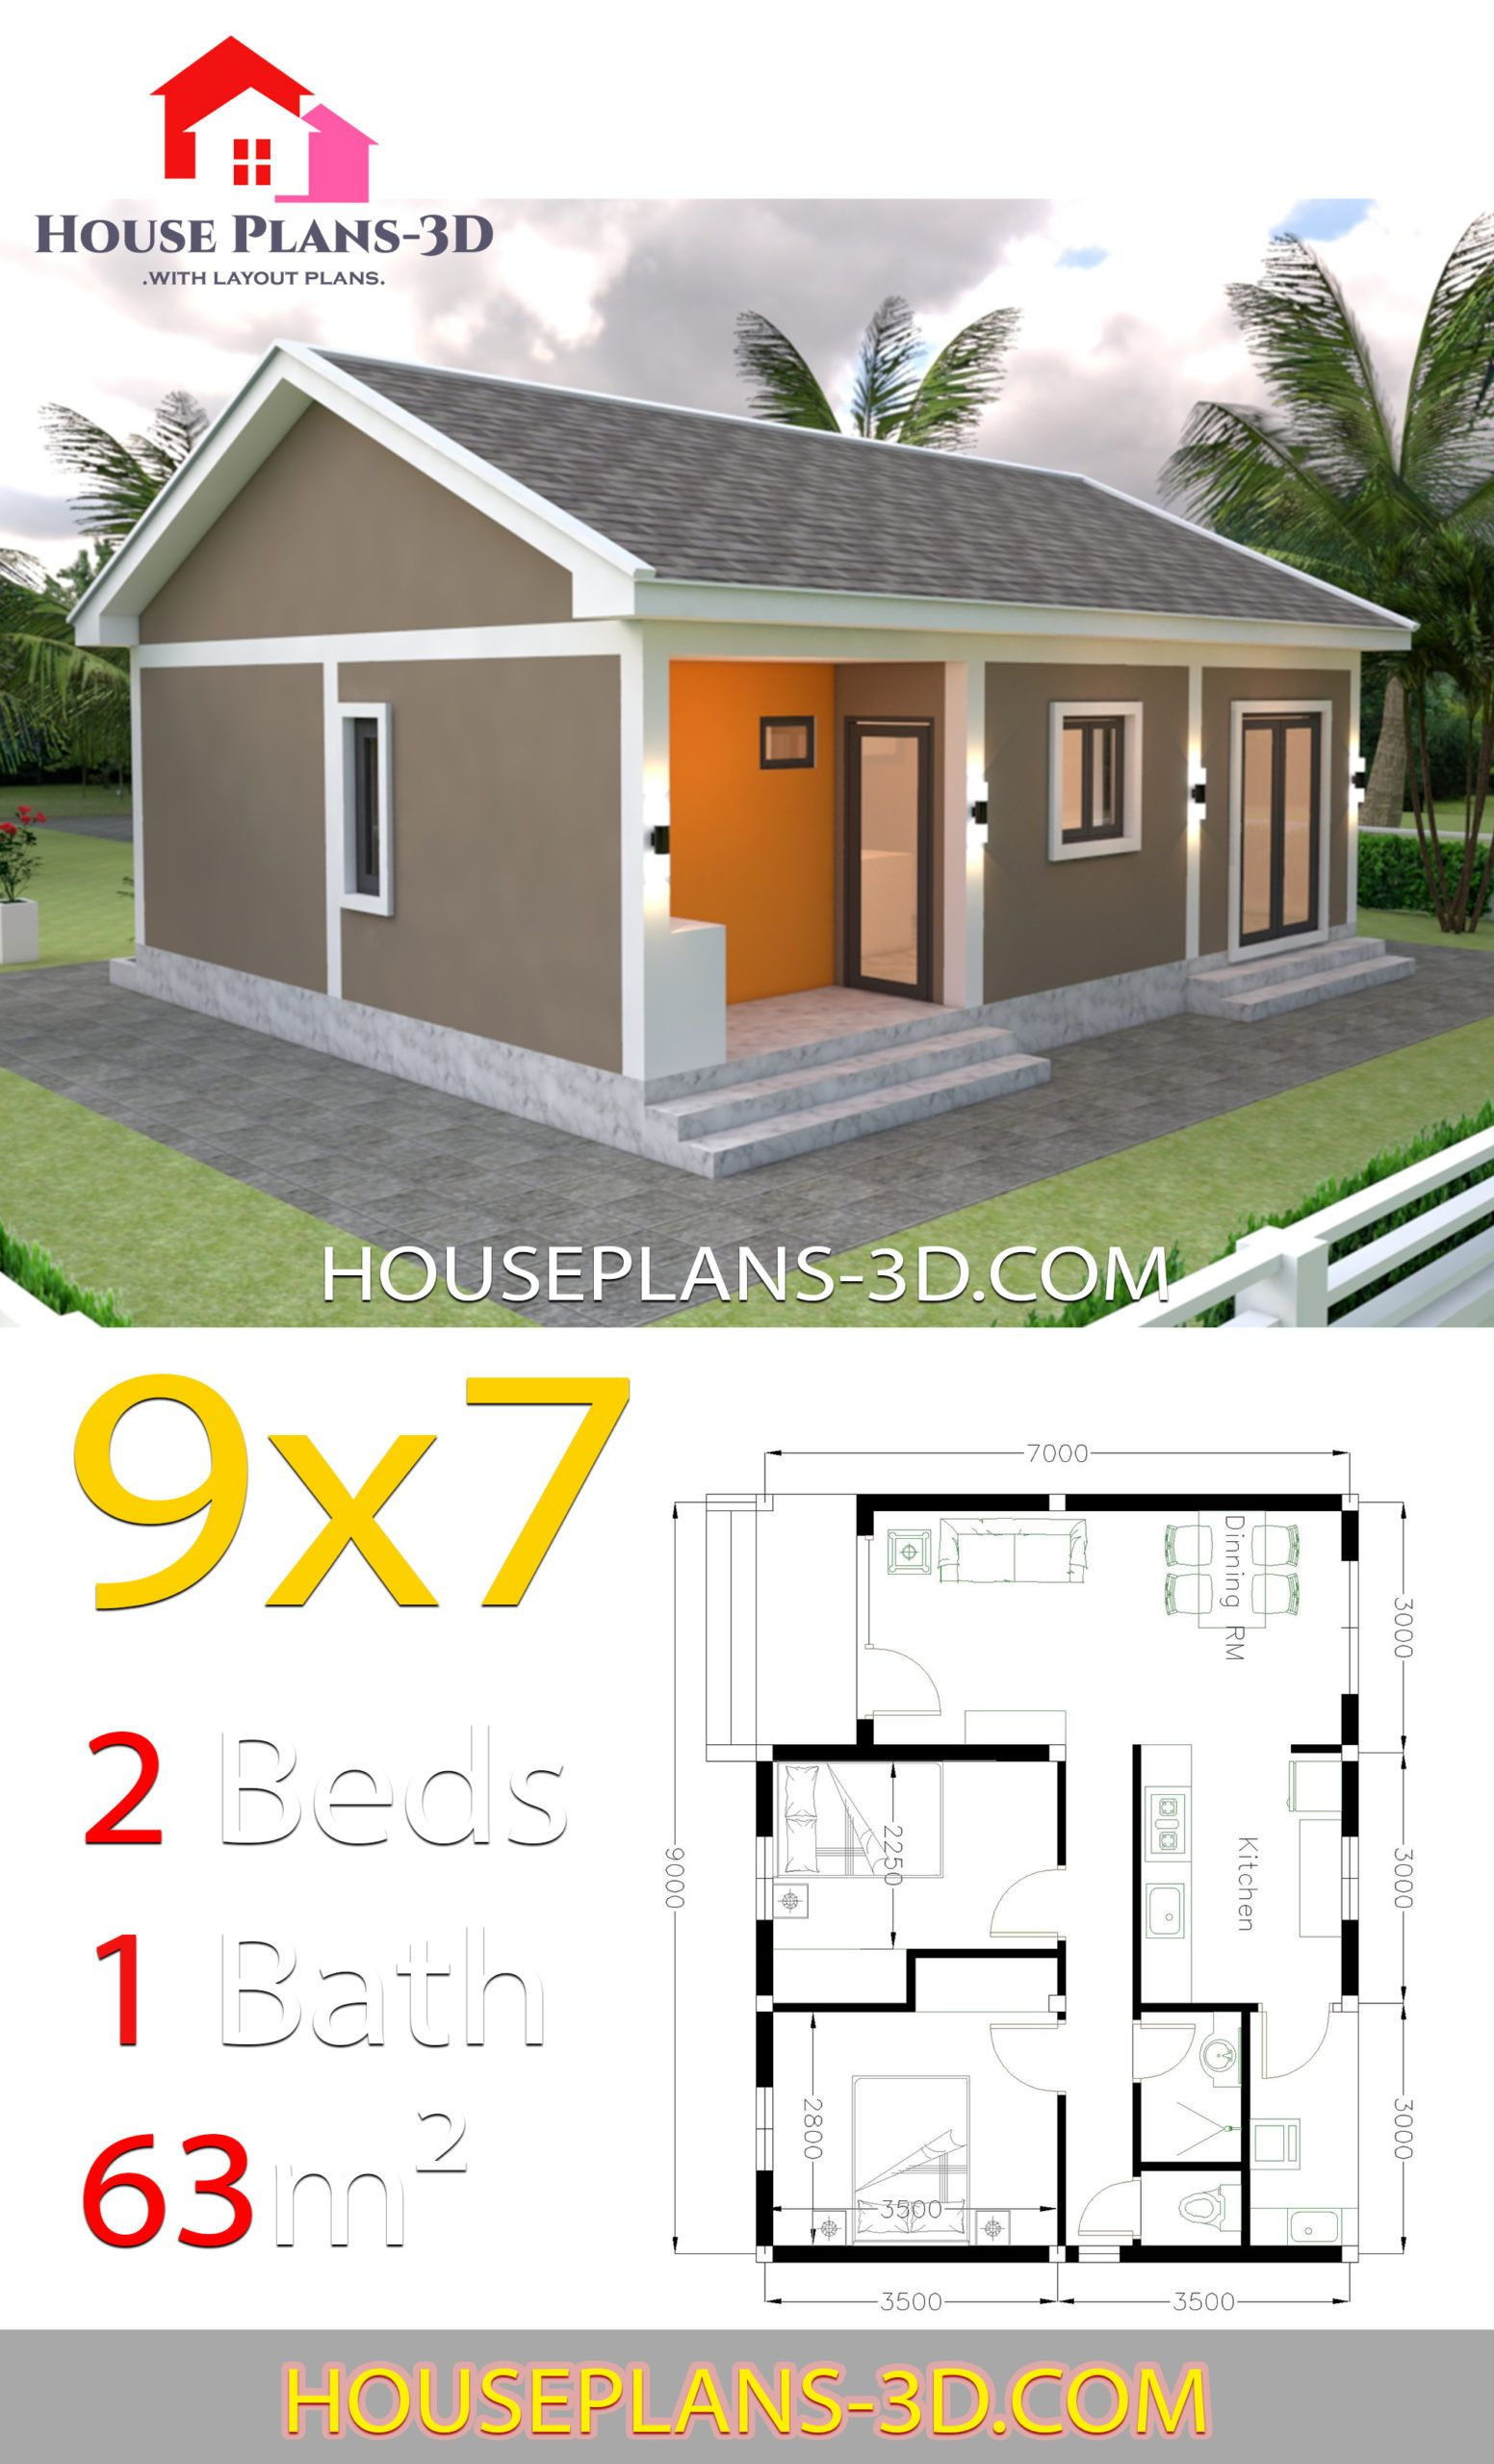 House Plans 9x7 With 2 Bedrooms Gable Roof House Plans 3d In 2020 House Plans Gable Roof House My House Plans